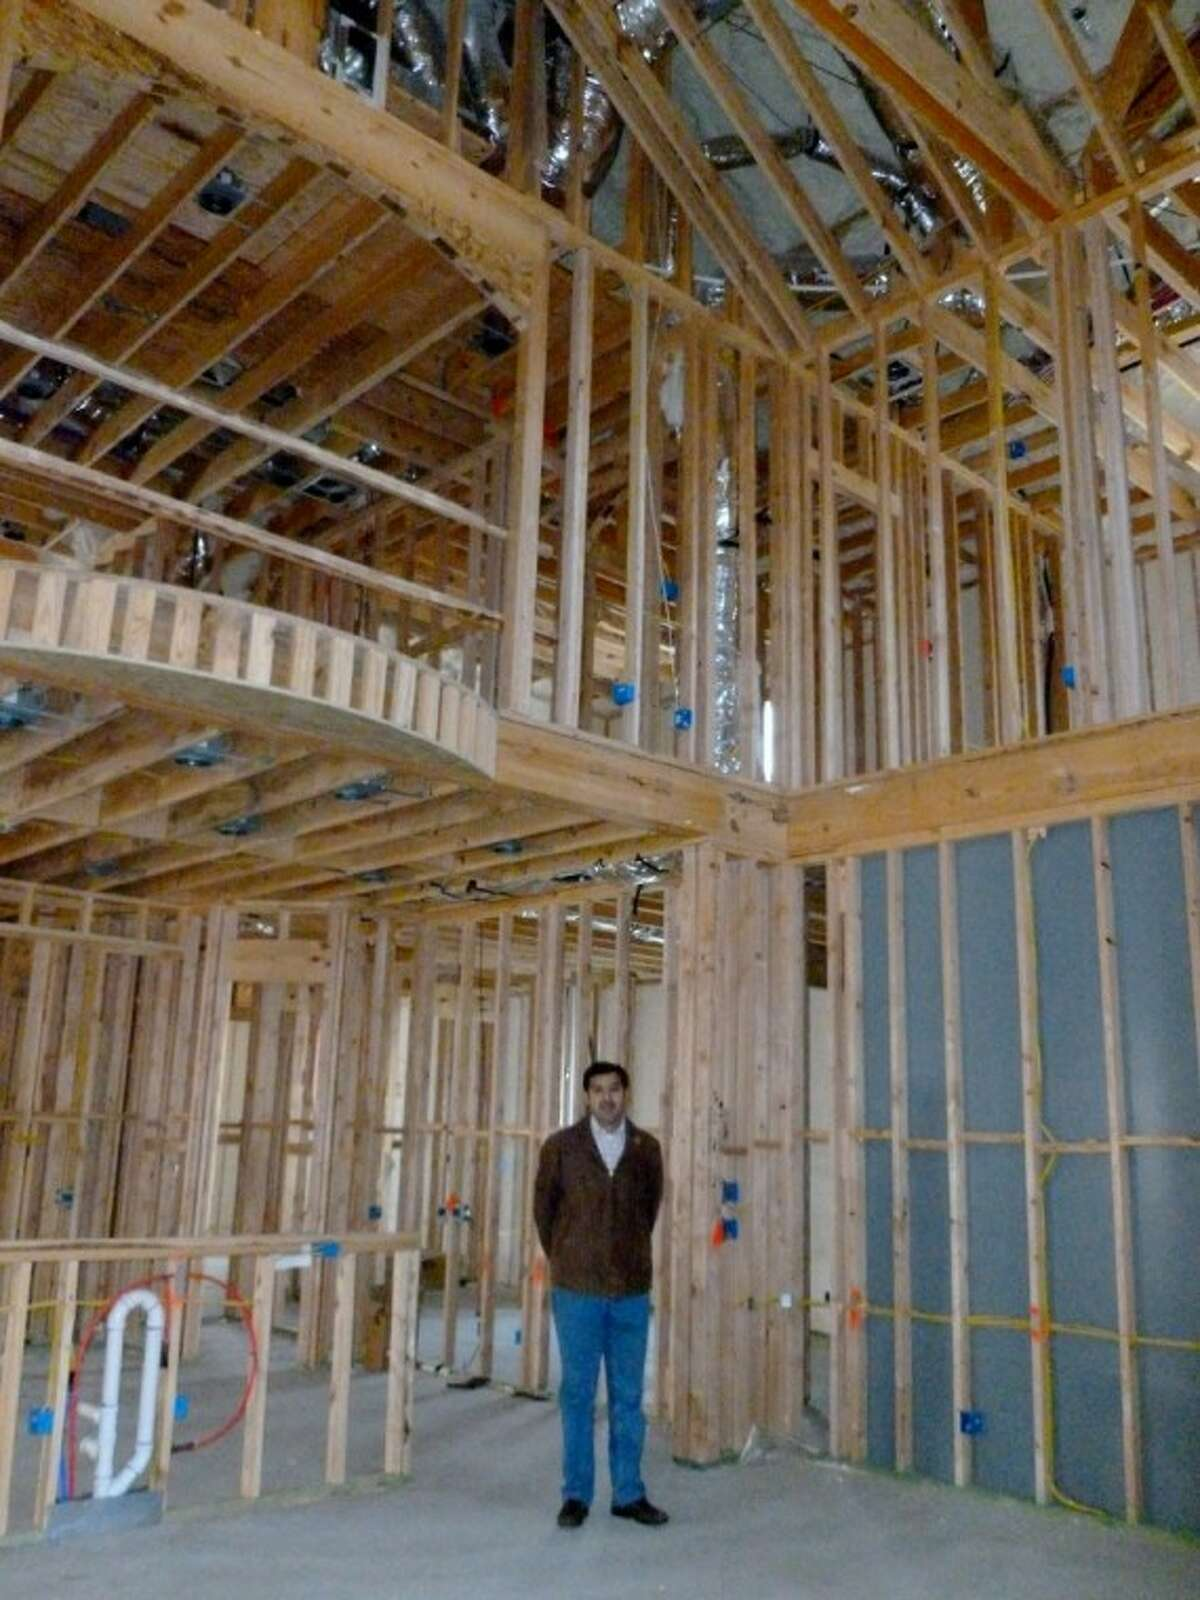 Graduate master builder N. Harris Malik, owner of Sunrise Custom Homes, oversees construction at one of his homes.